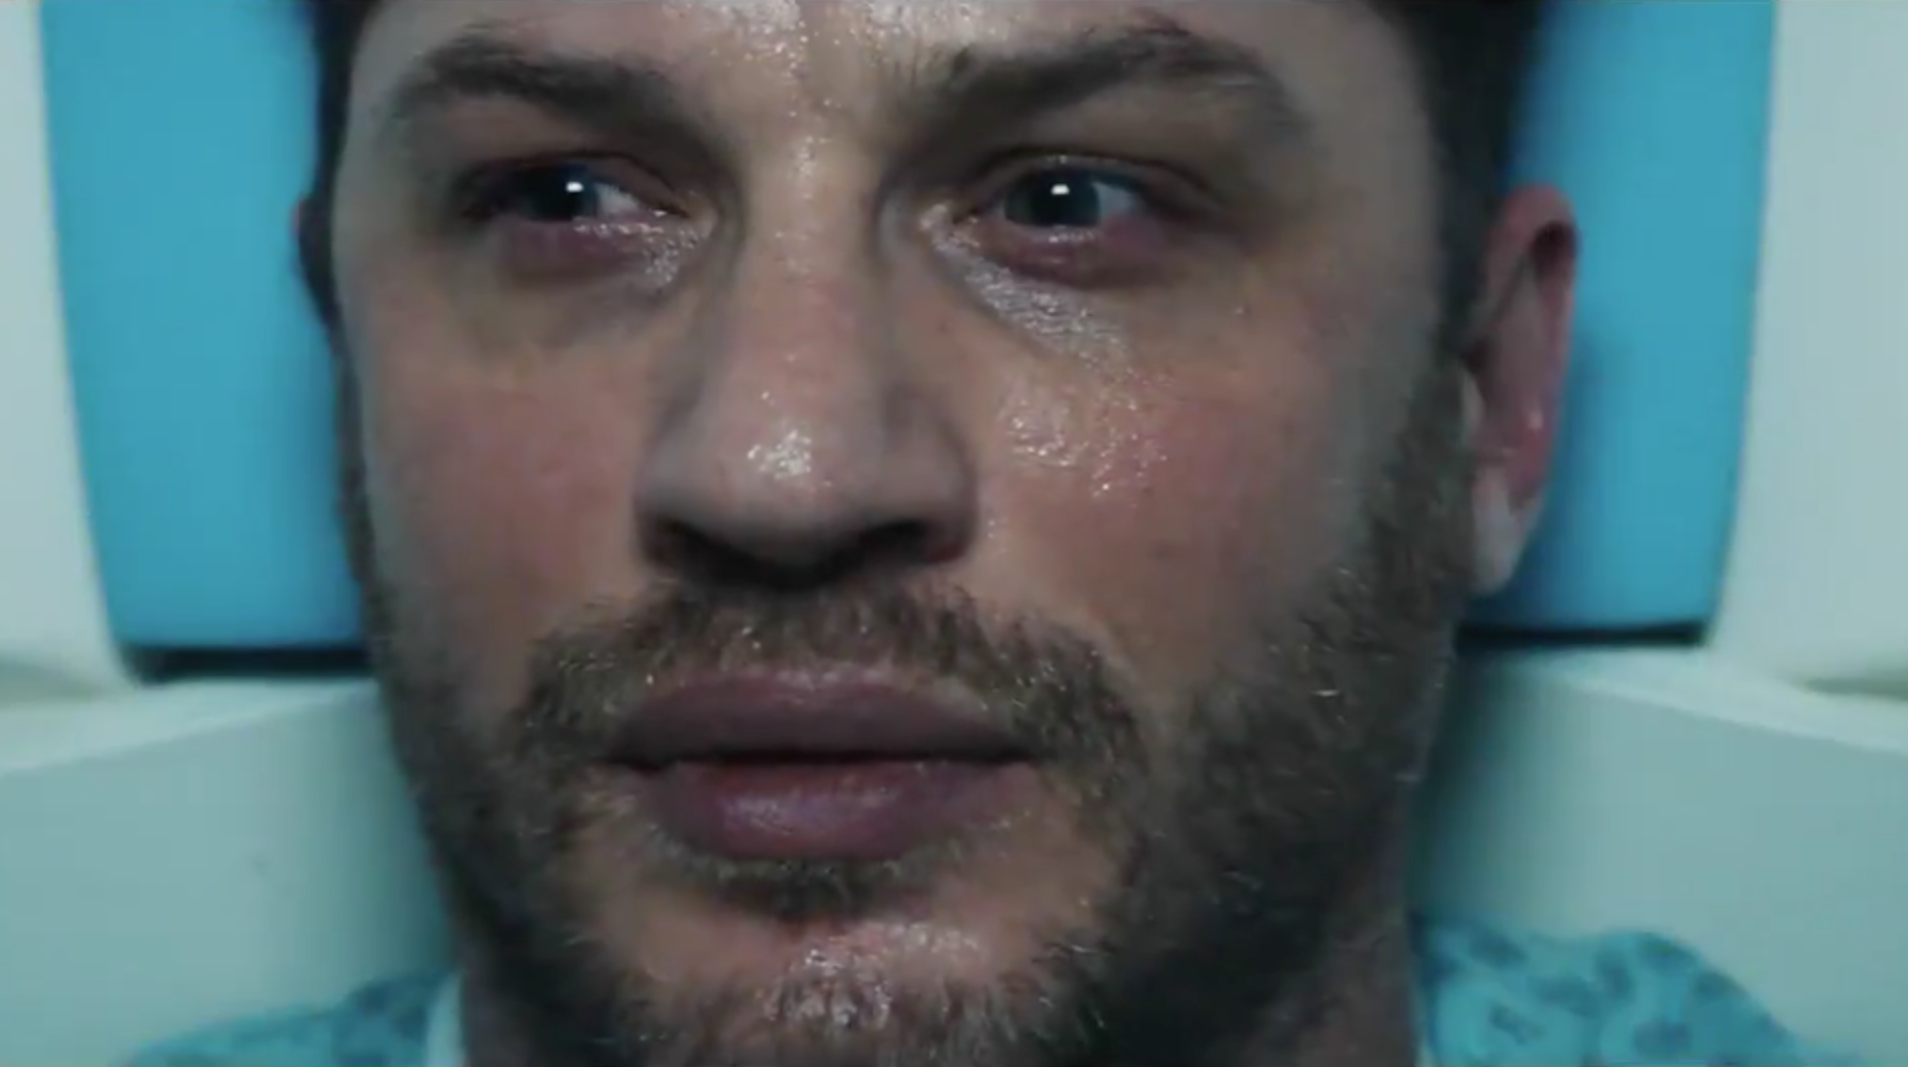 'Venom' First Trailer: Tom Hardy is Ready to Unleash His R-Rated Superhero